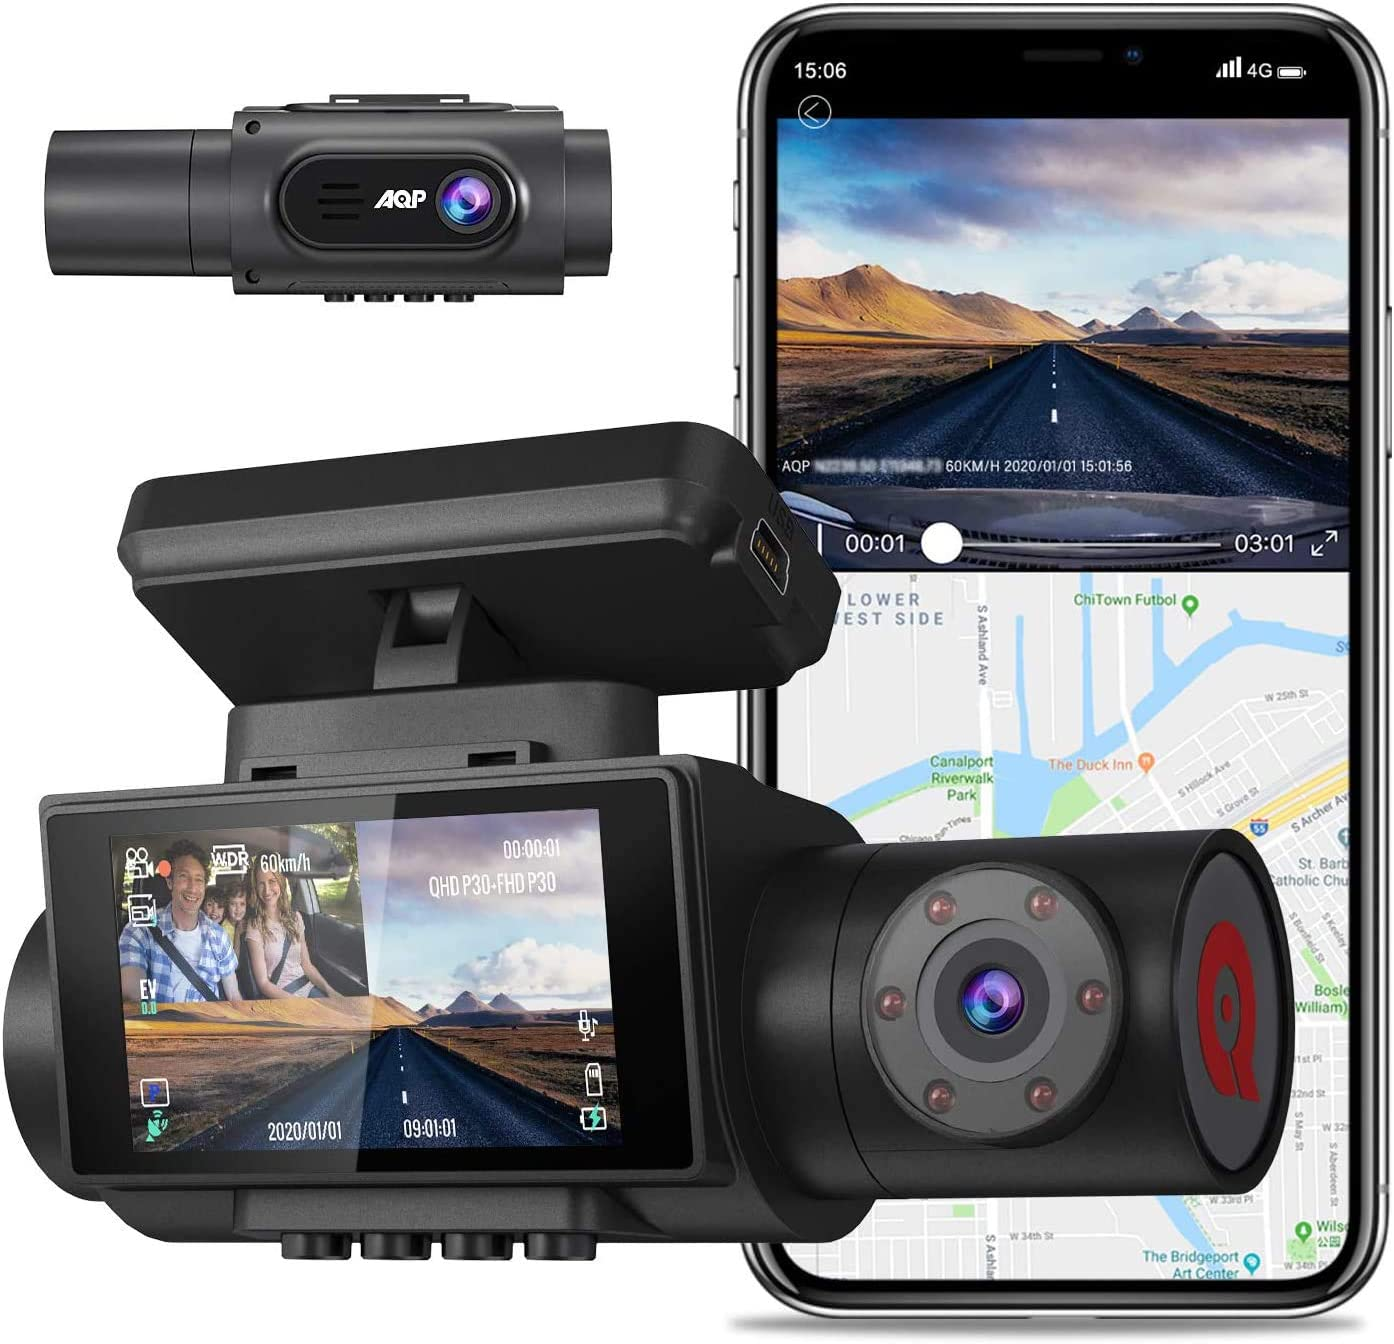 Amazon Com Aqp Dual Dash Cam 4k Single Front Camera 2560p Front And 1080p Inside Cabin Dash Camera With Wifi Gps Infrared Night Vision Support 128gb Dual Sony Sensor Parking Mode G Sensor